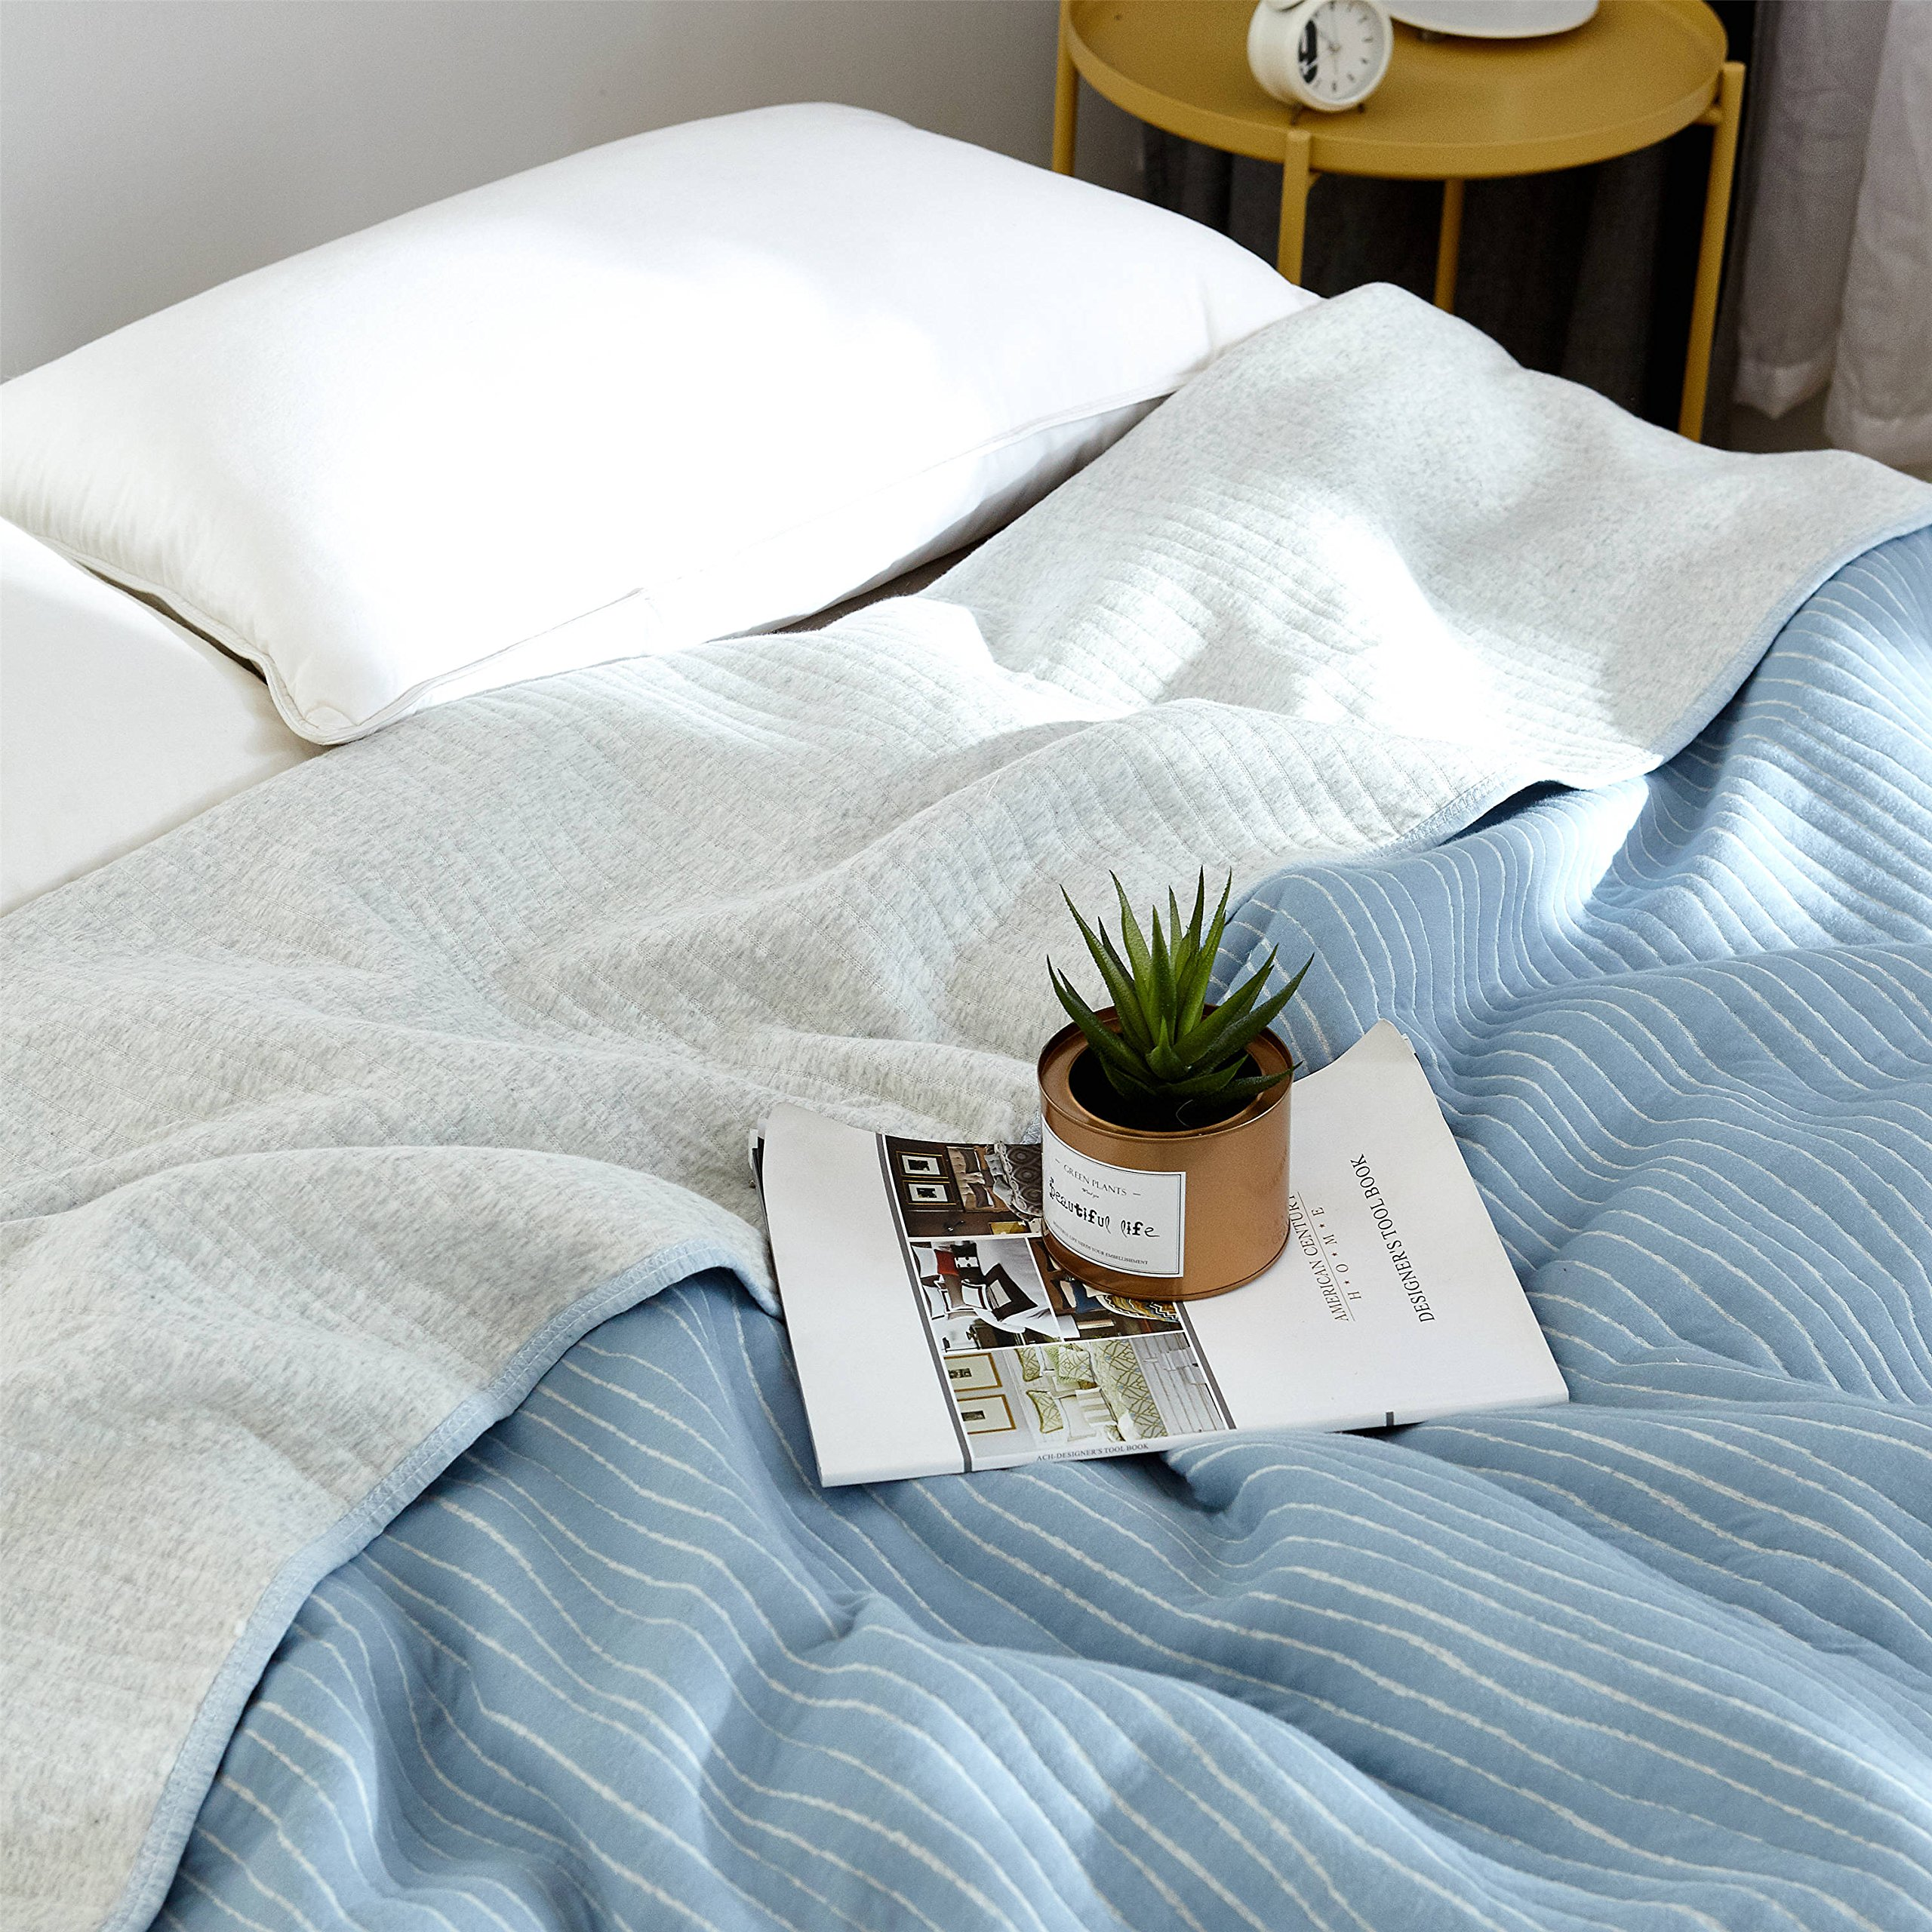 J-pinno Blue Stripes Jersey Cotton Cozy Quilt Reversible Throw Blanket Bedspread Bedding Coverlet for Kids Teen Boys Bed Gift (1, F/Q 78'' X 90'')